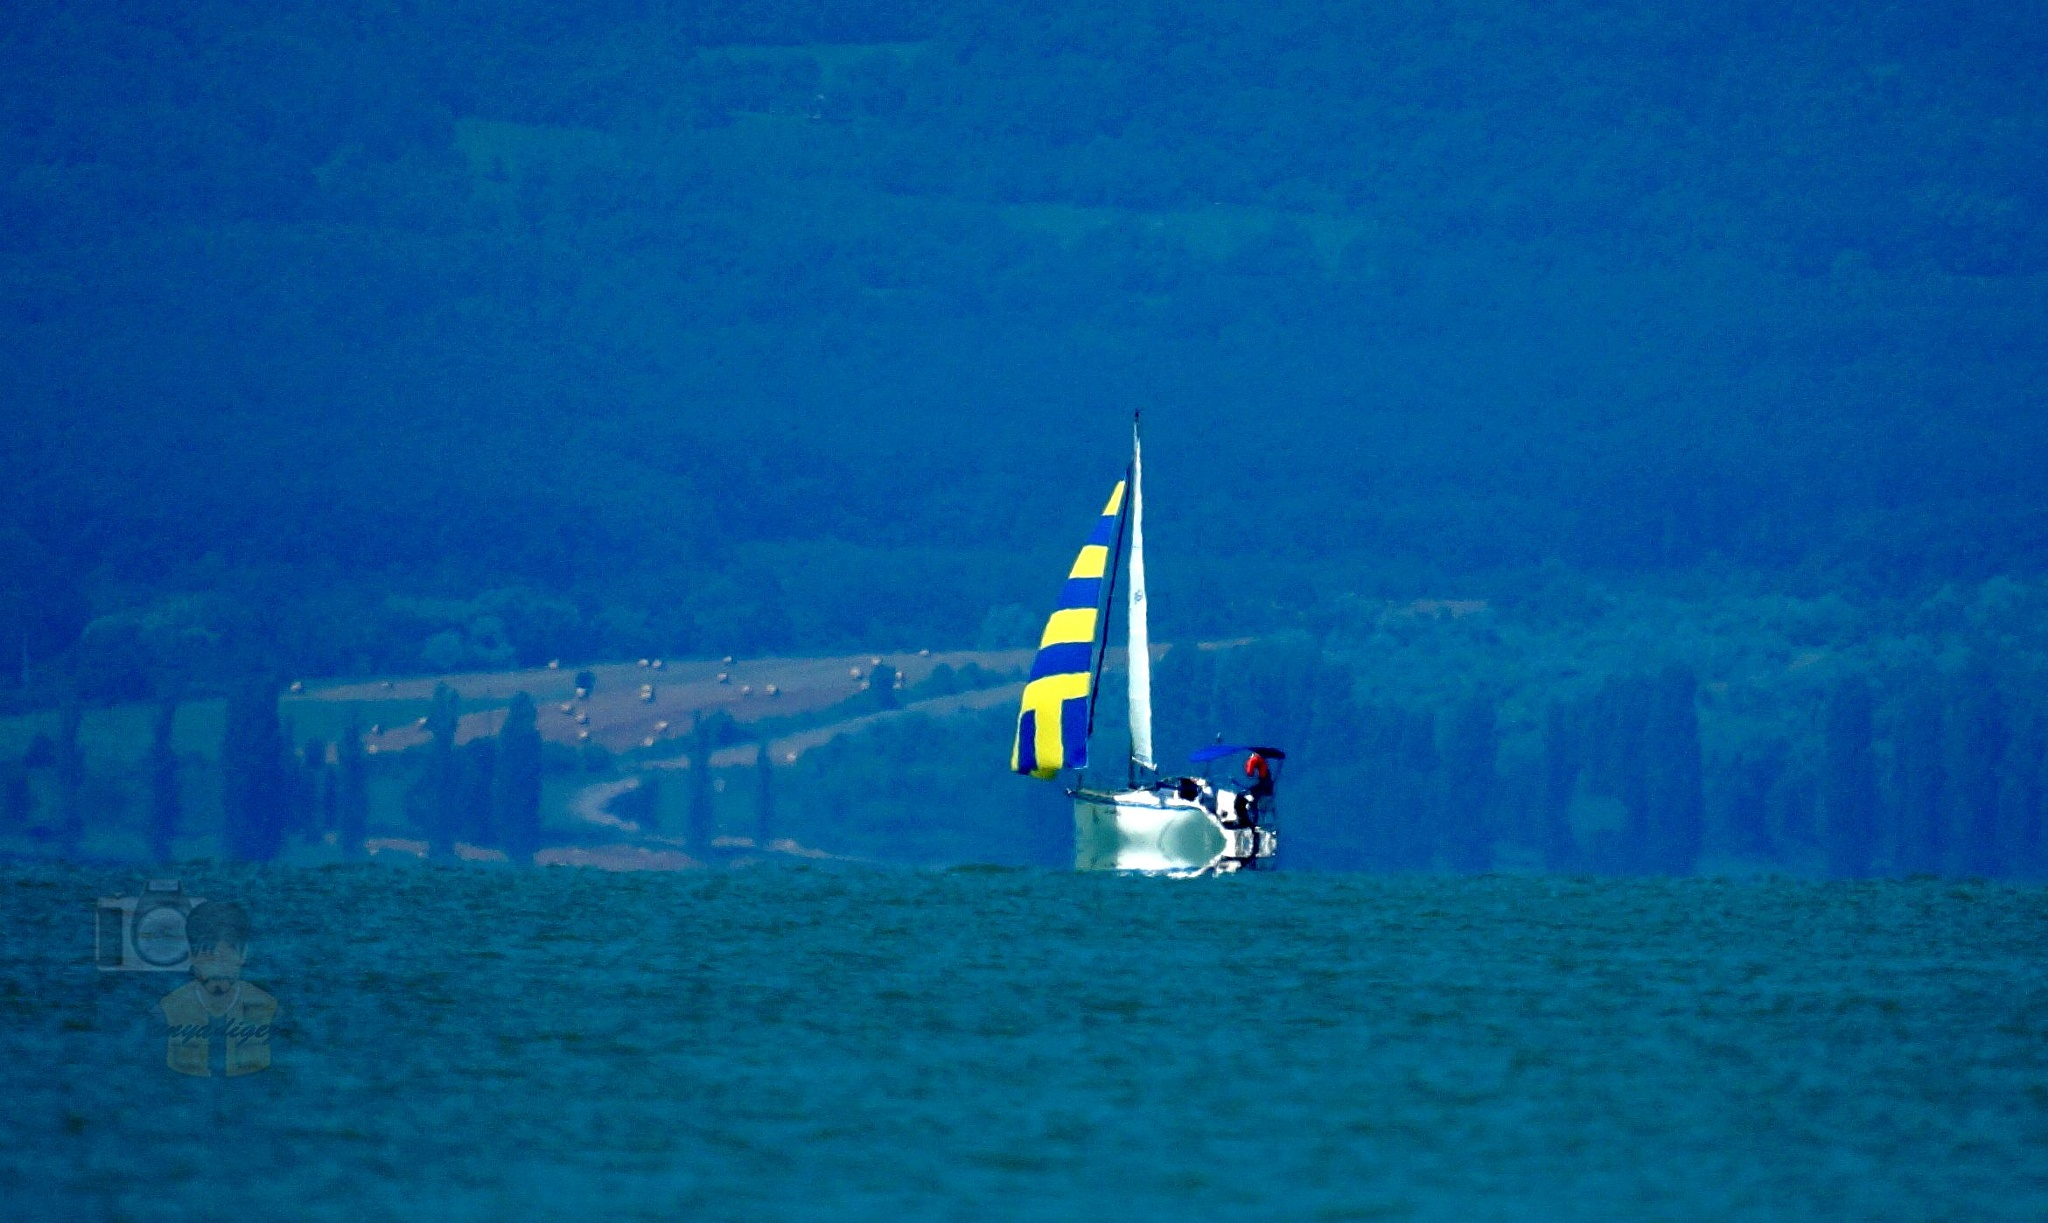 July 02,16. Sailboat on Lake Balaton & fata morgana by hunyadigeza